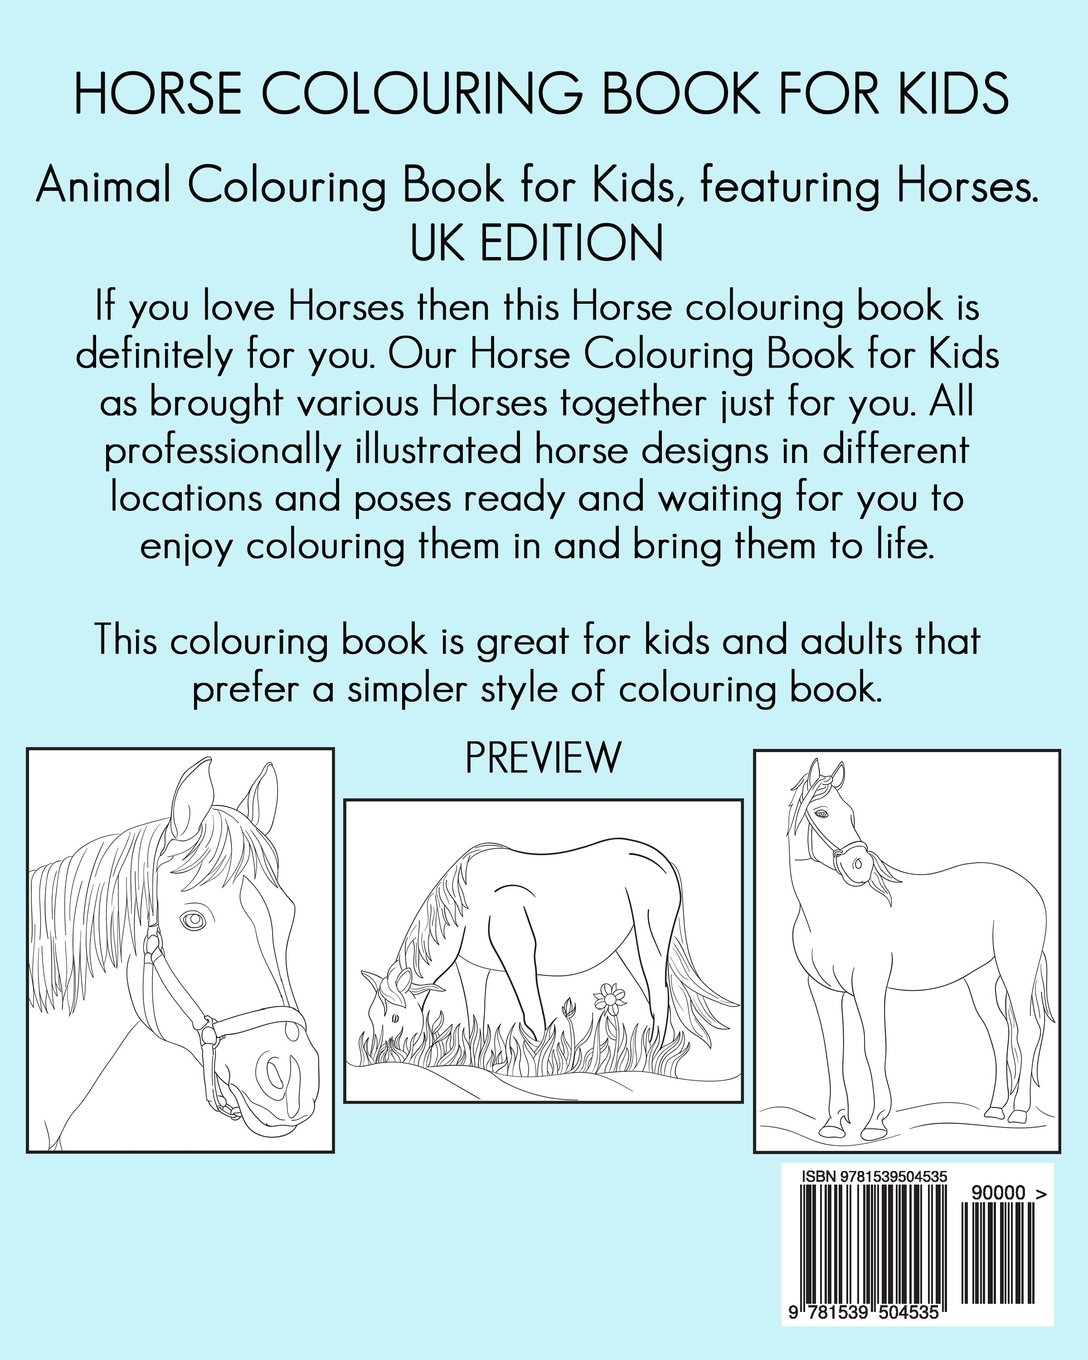 horse colouring book for kids animal colouring book for kids